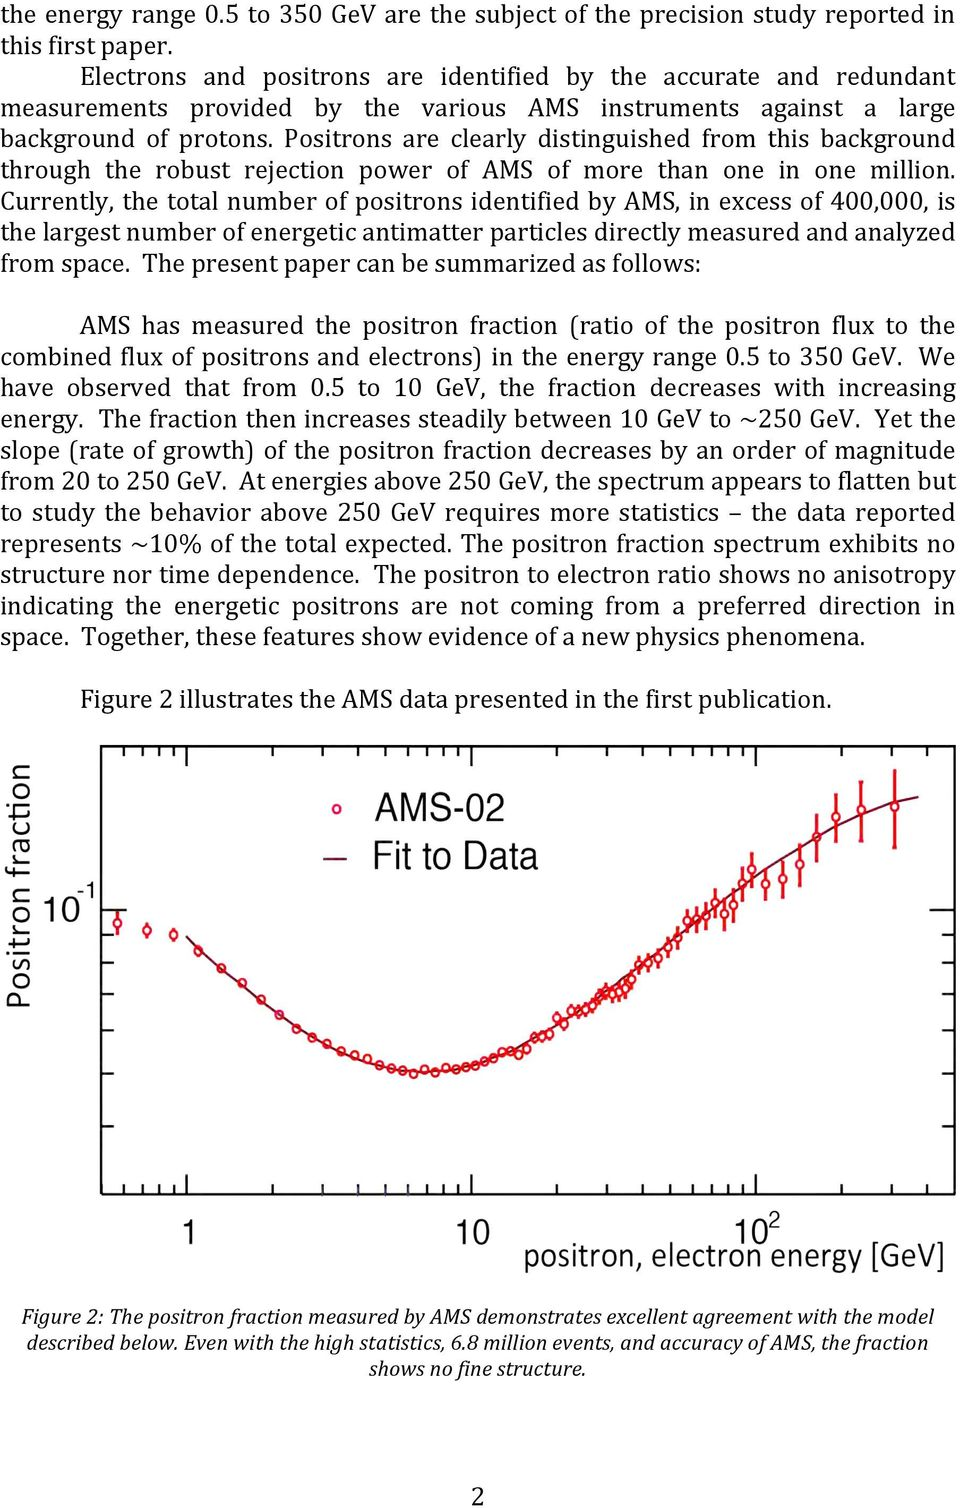 Positrons are clearly distinguished from this background through the robust rejection power of AMS of more than one in one million.